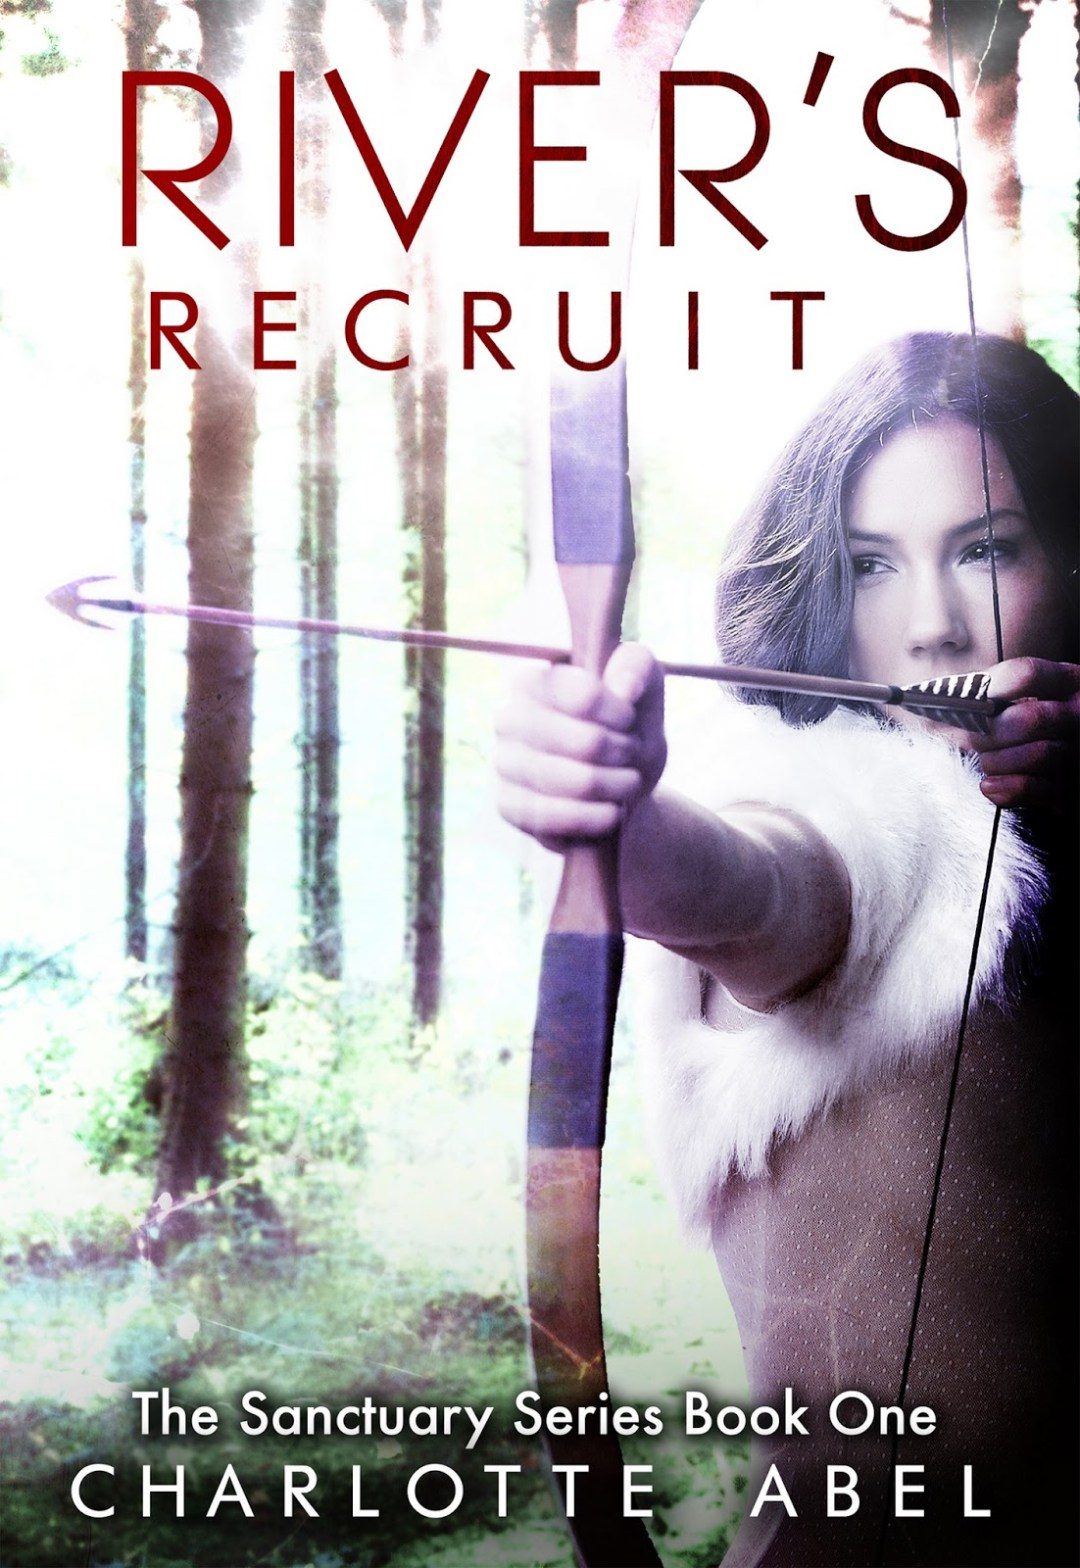 River's Recruit by Charlotte Abel available free for limited time on Kindle